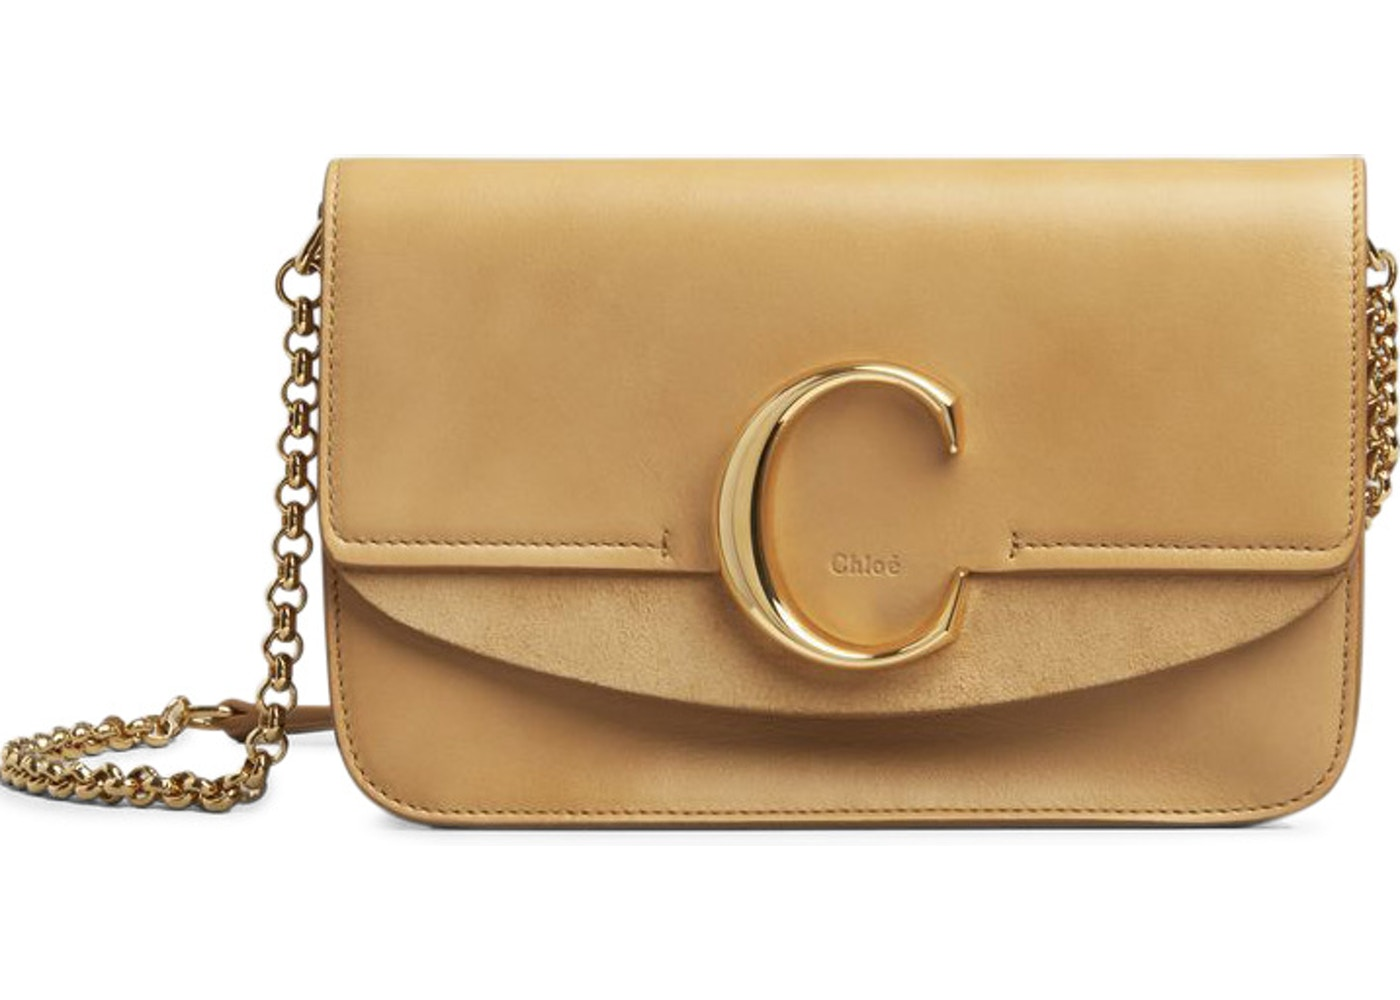 955fc21a3d5 Chloe C Clutch with Chain Bleached Brown. Bleached Brown